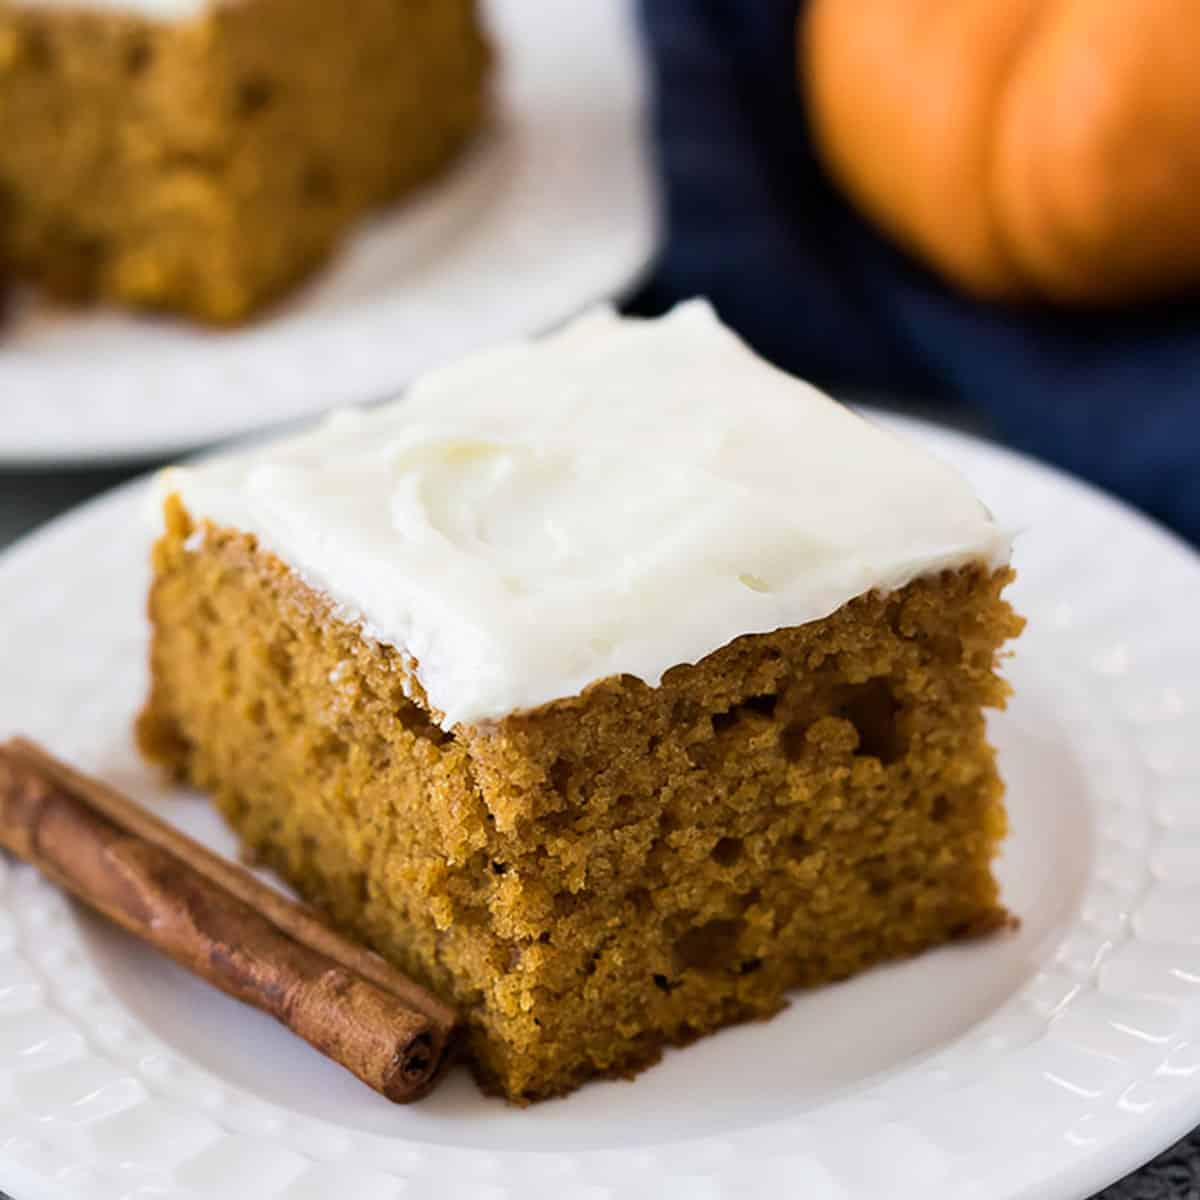 Pumpkin cake next to a cinnamon stick on a small white plate.